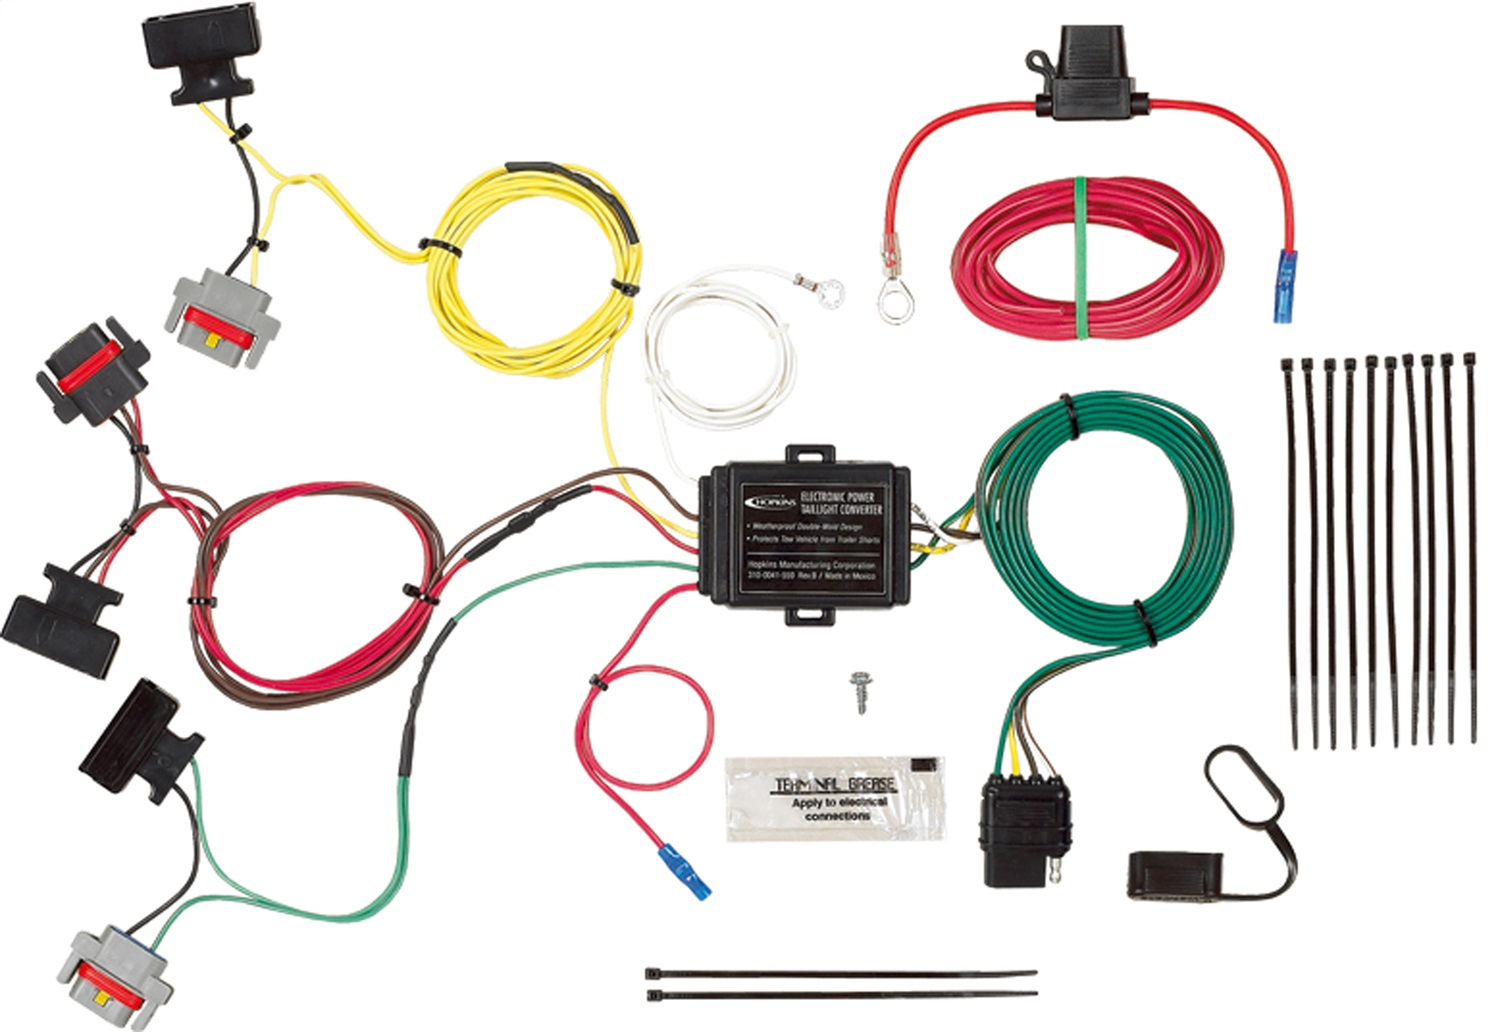 hopkins towing solution 11142435 trailer wire harness walmart comhopkins wire harness 4 [ 1500 x 1032 Pixel ]